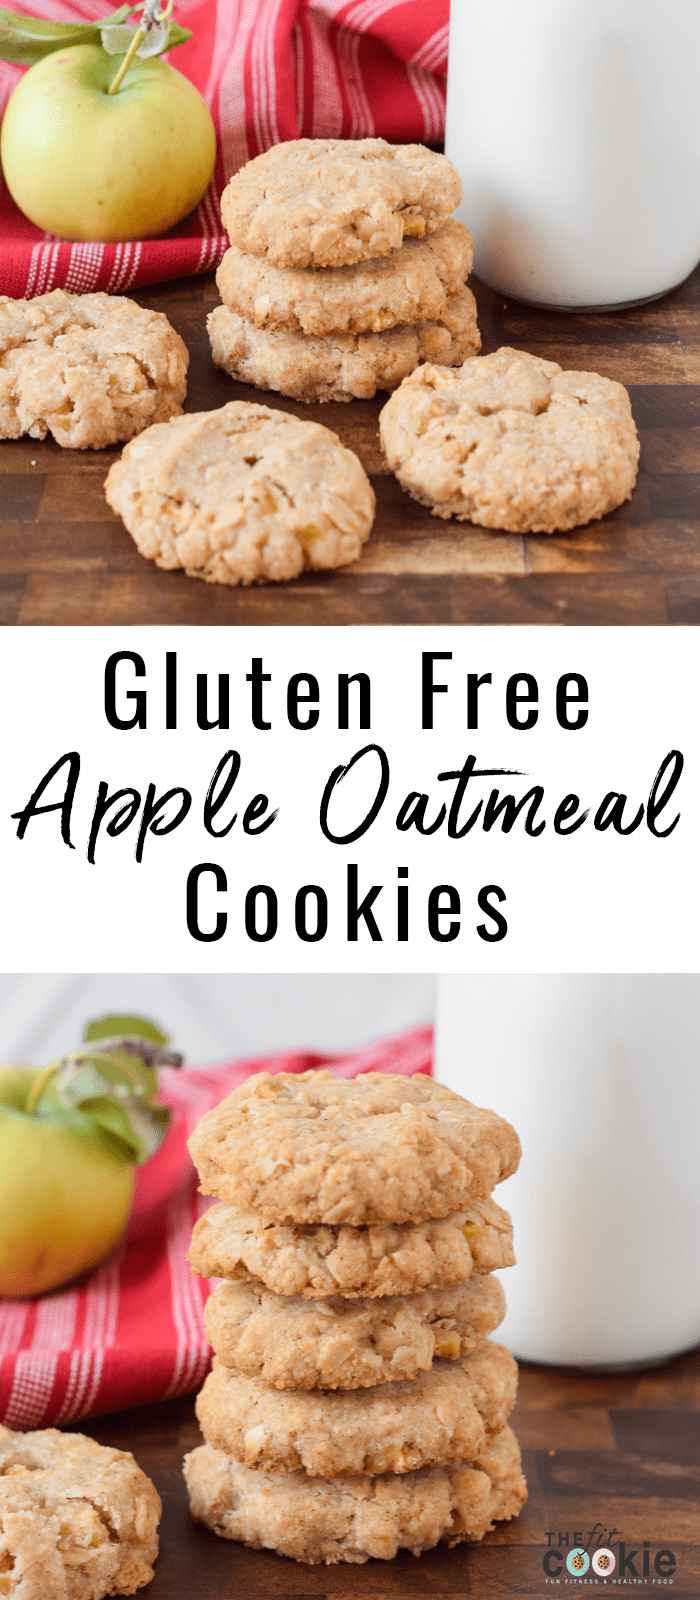 image collage of gluten free dairyfree apple oatmeal cookies next to an apple